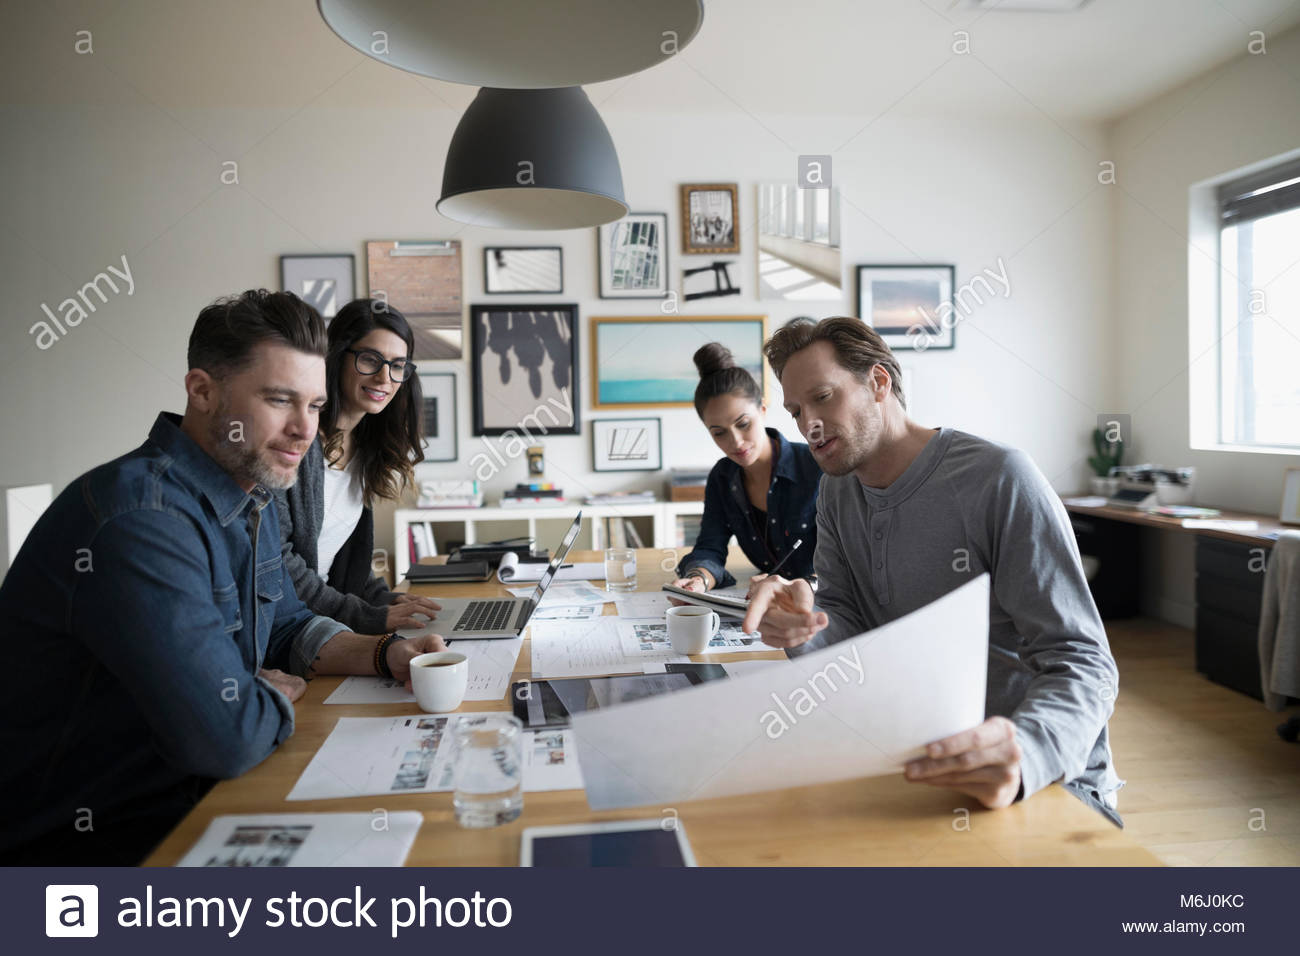 Photo editor production team reviewing photo proofs in office meeting - Stock Image